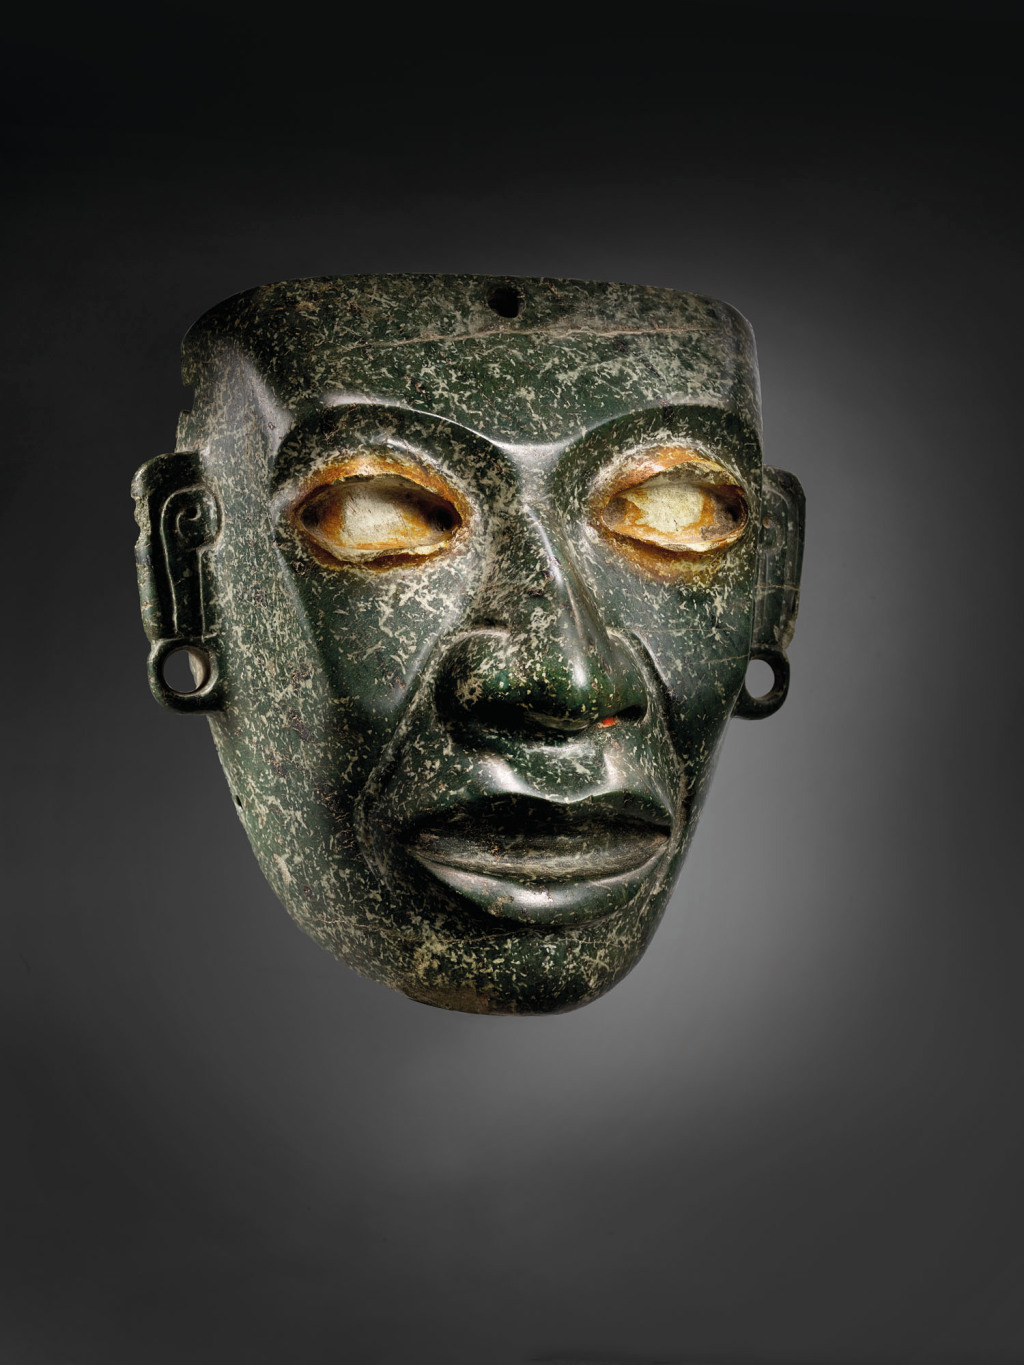 Mexico Files Legal Claim Over Pre-Columbian Art Set to Be Auctioned at Christie's